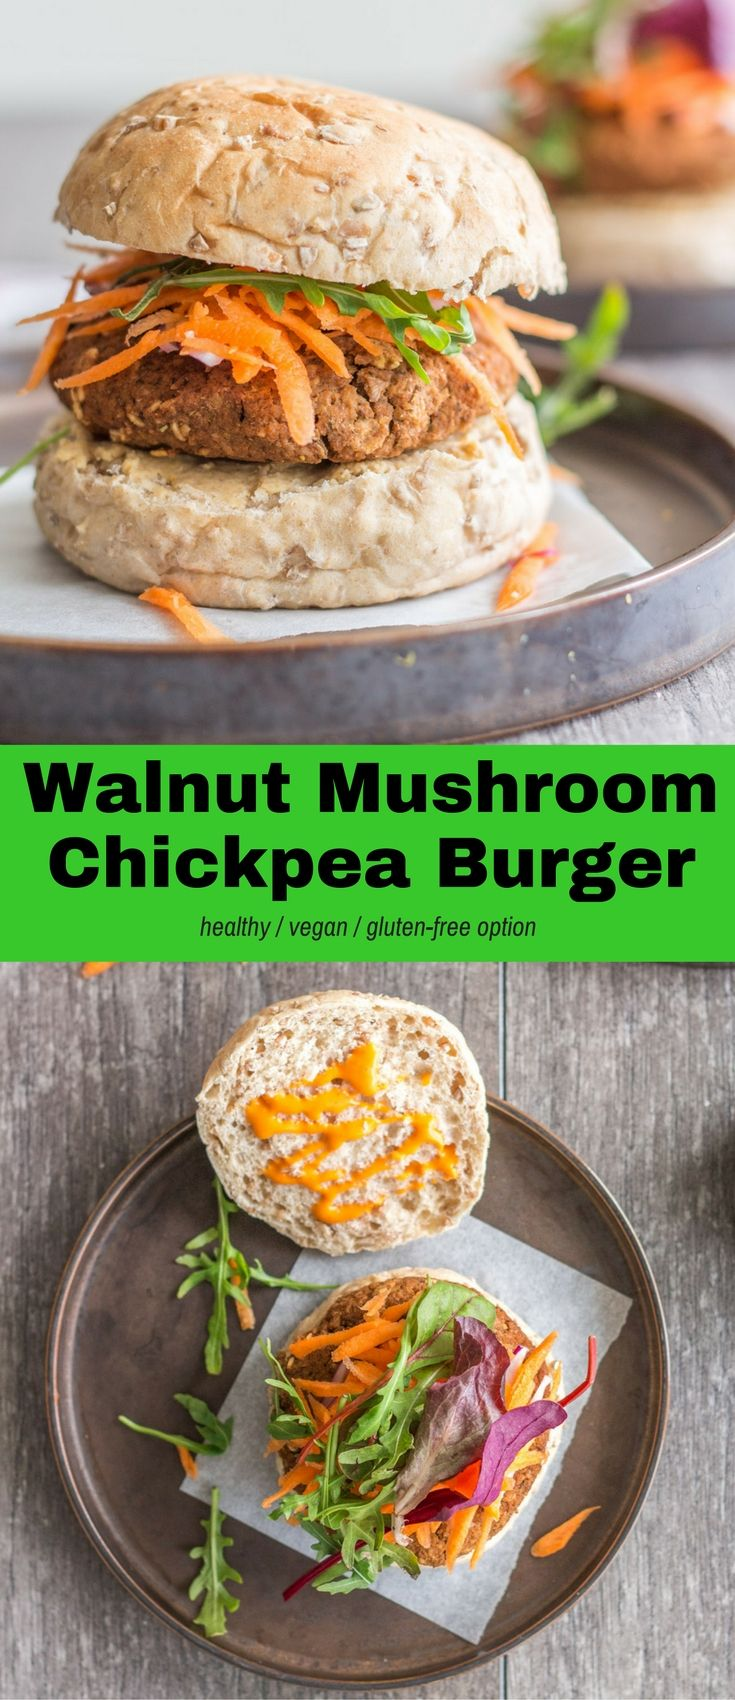 These Walnut Mushroom Chickpea Burgers are easy to make, super healthy, packed full of flavour, and delicious. 11 basic ingredients, vegan, and gluten-free option. #vegan #glutenfree #plantbased #recipes #healthy